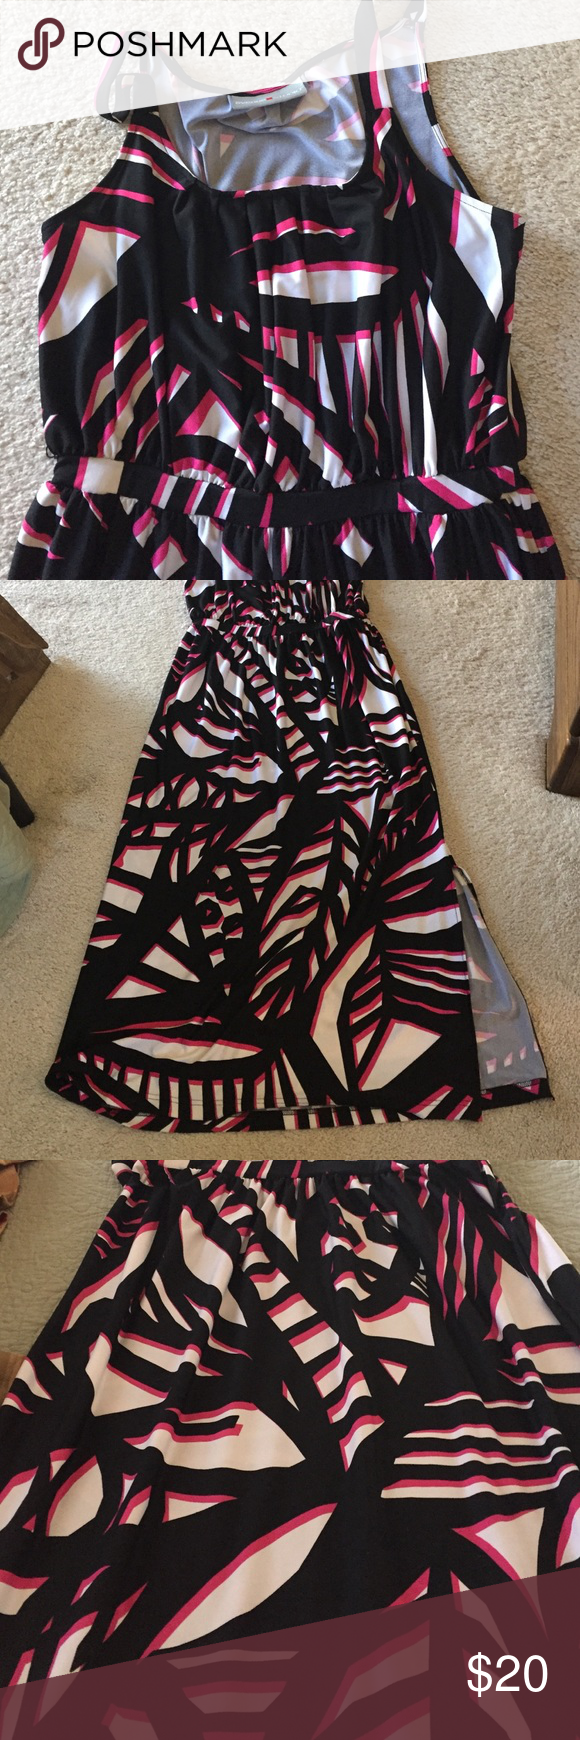 "Avenue Maxi Dress NWOT. 95% Polyester 5% Spandex. Slit on one side of leg.  Waist line to bottom is 39"" Smoke Free Home. Size is not on dress fits 14/16 Avenue Dresses Maxi"